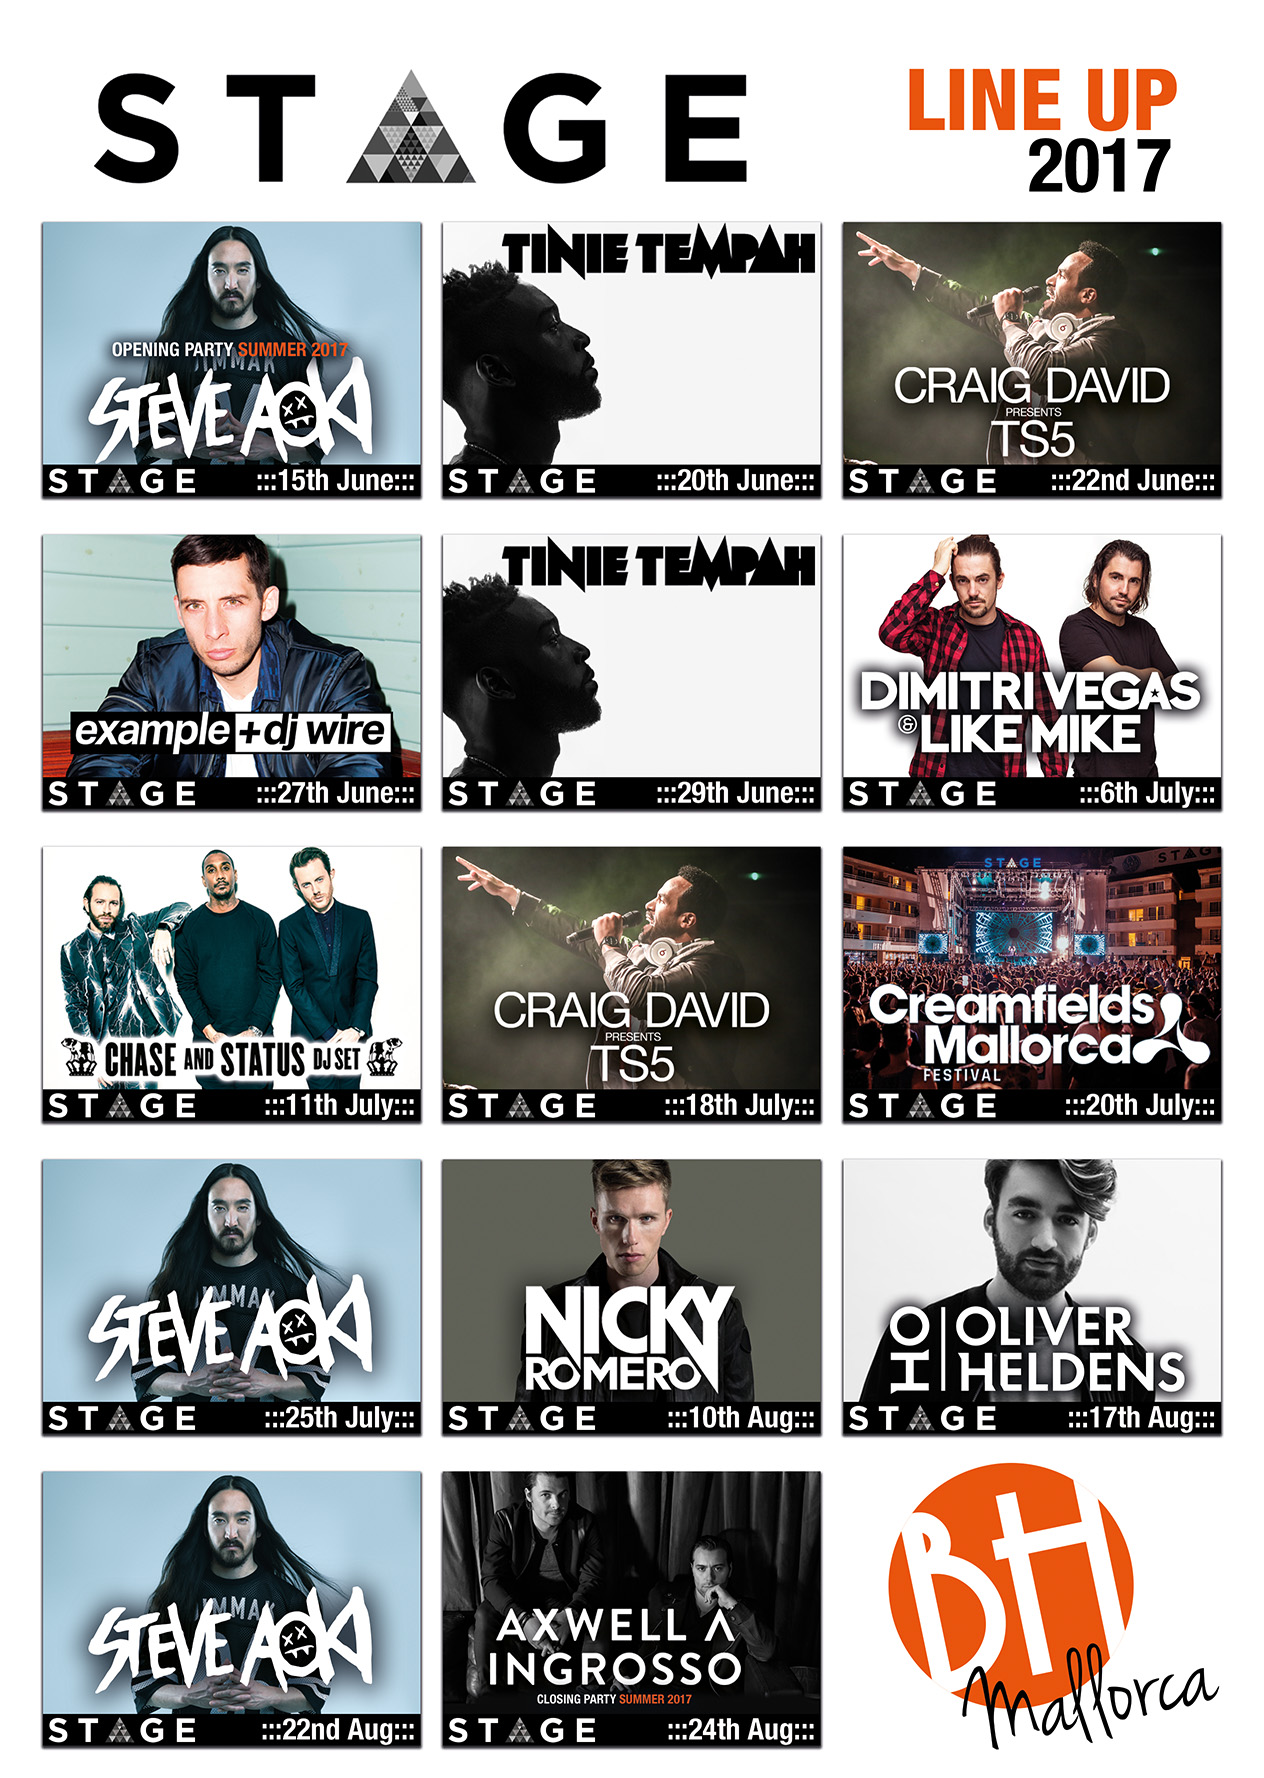 The full line up of the BH Mallorca for summer 2017